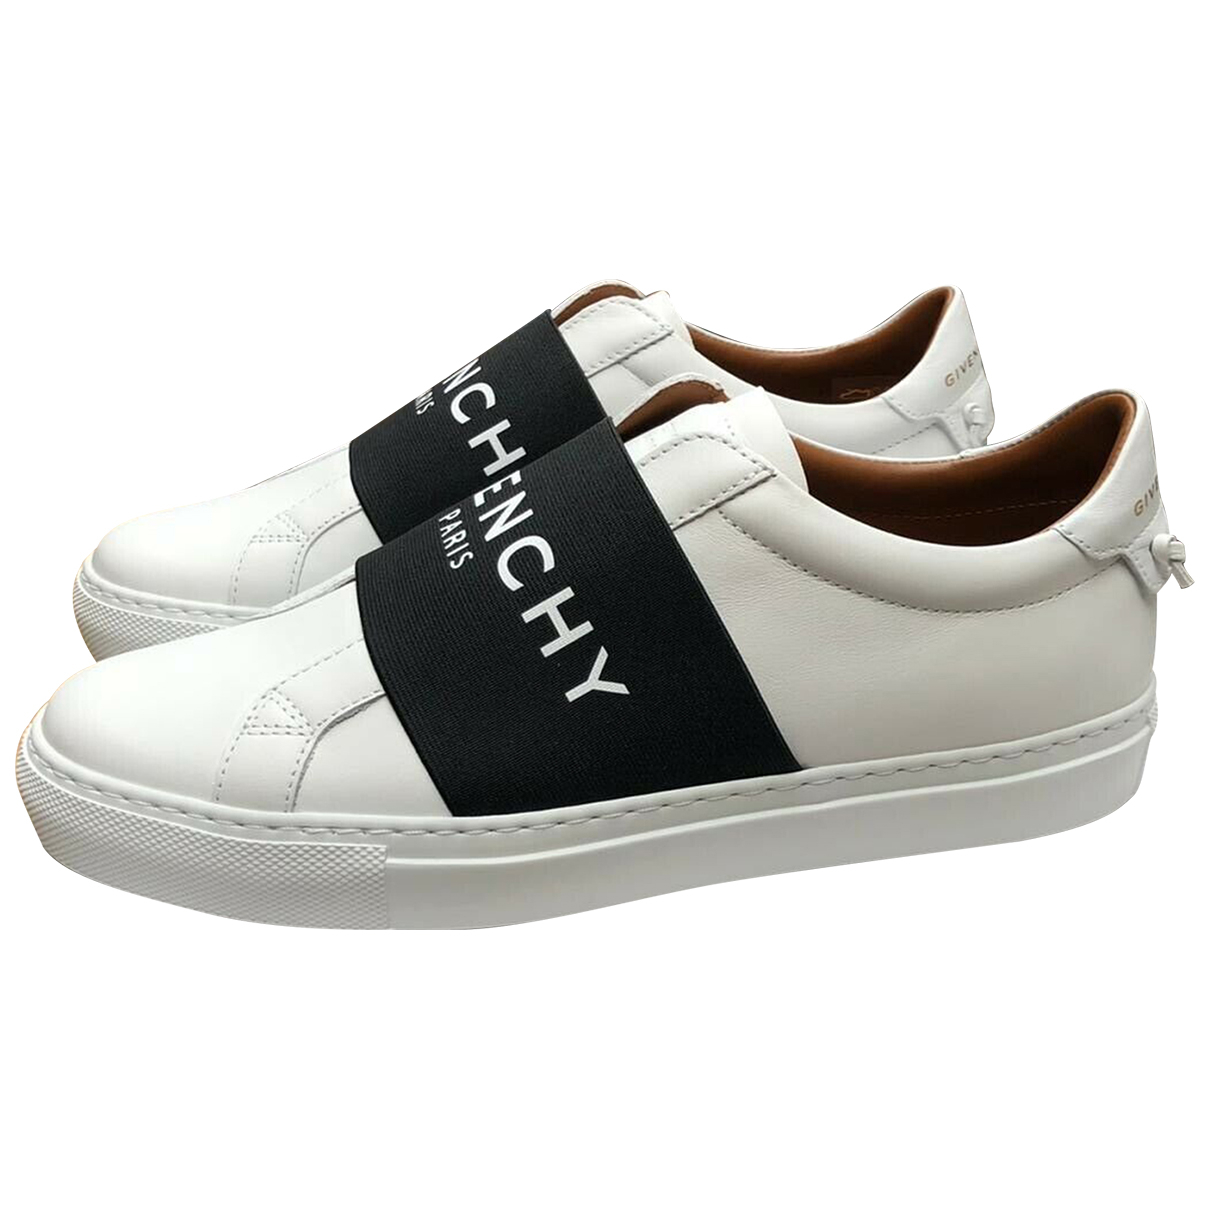 Givenchy \N White Leather Trainers for Women 37 EU